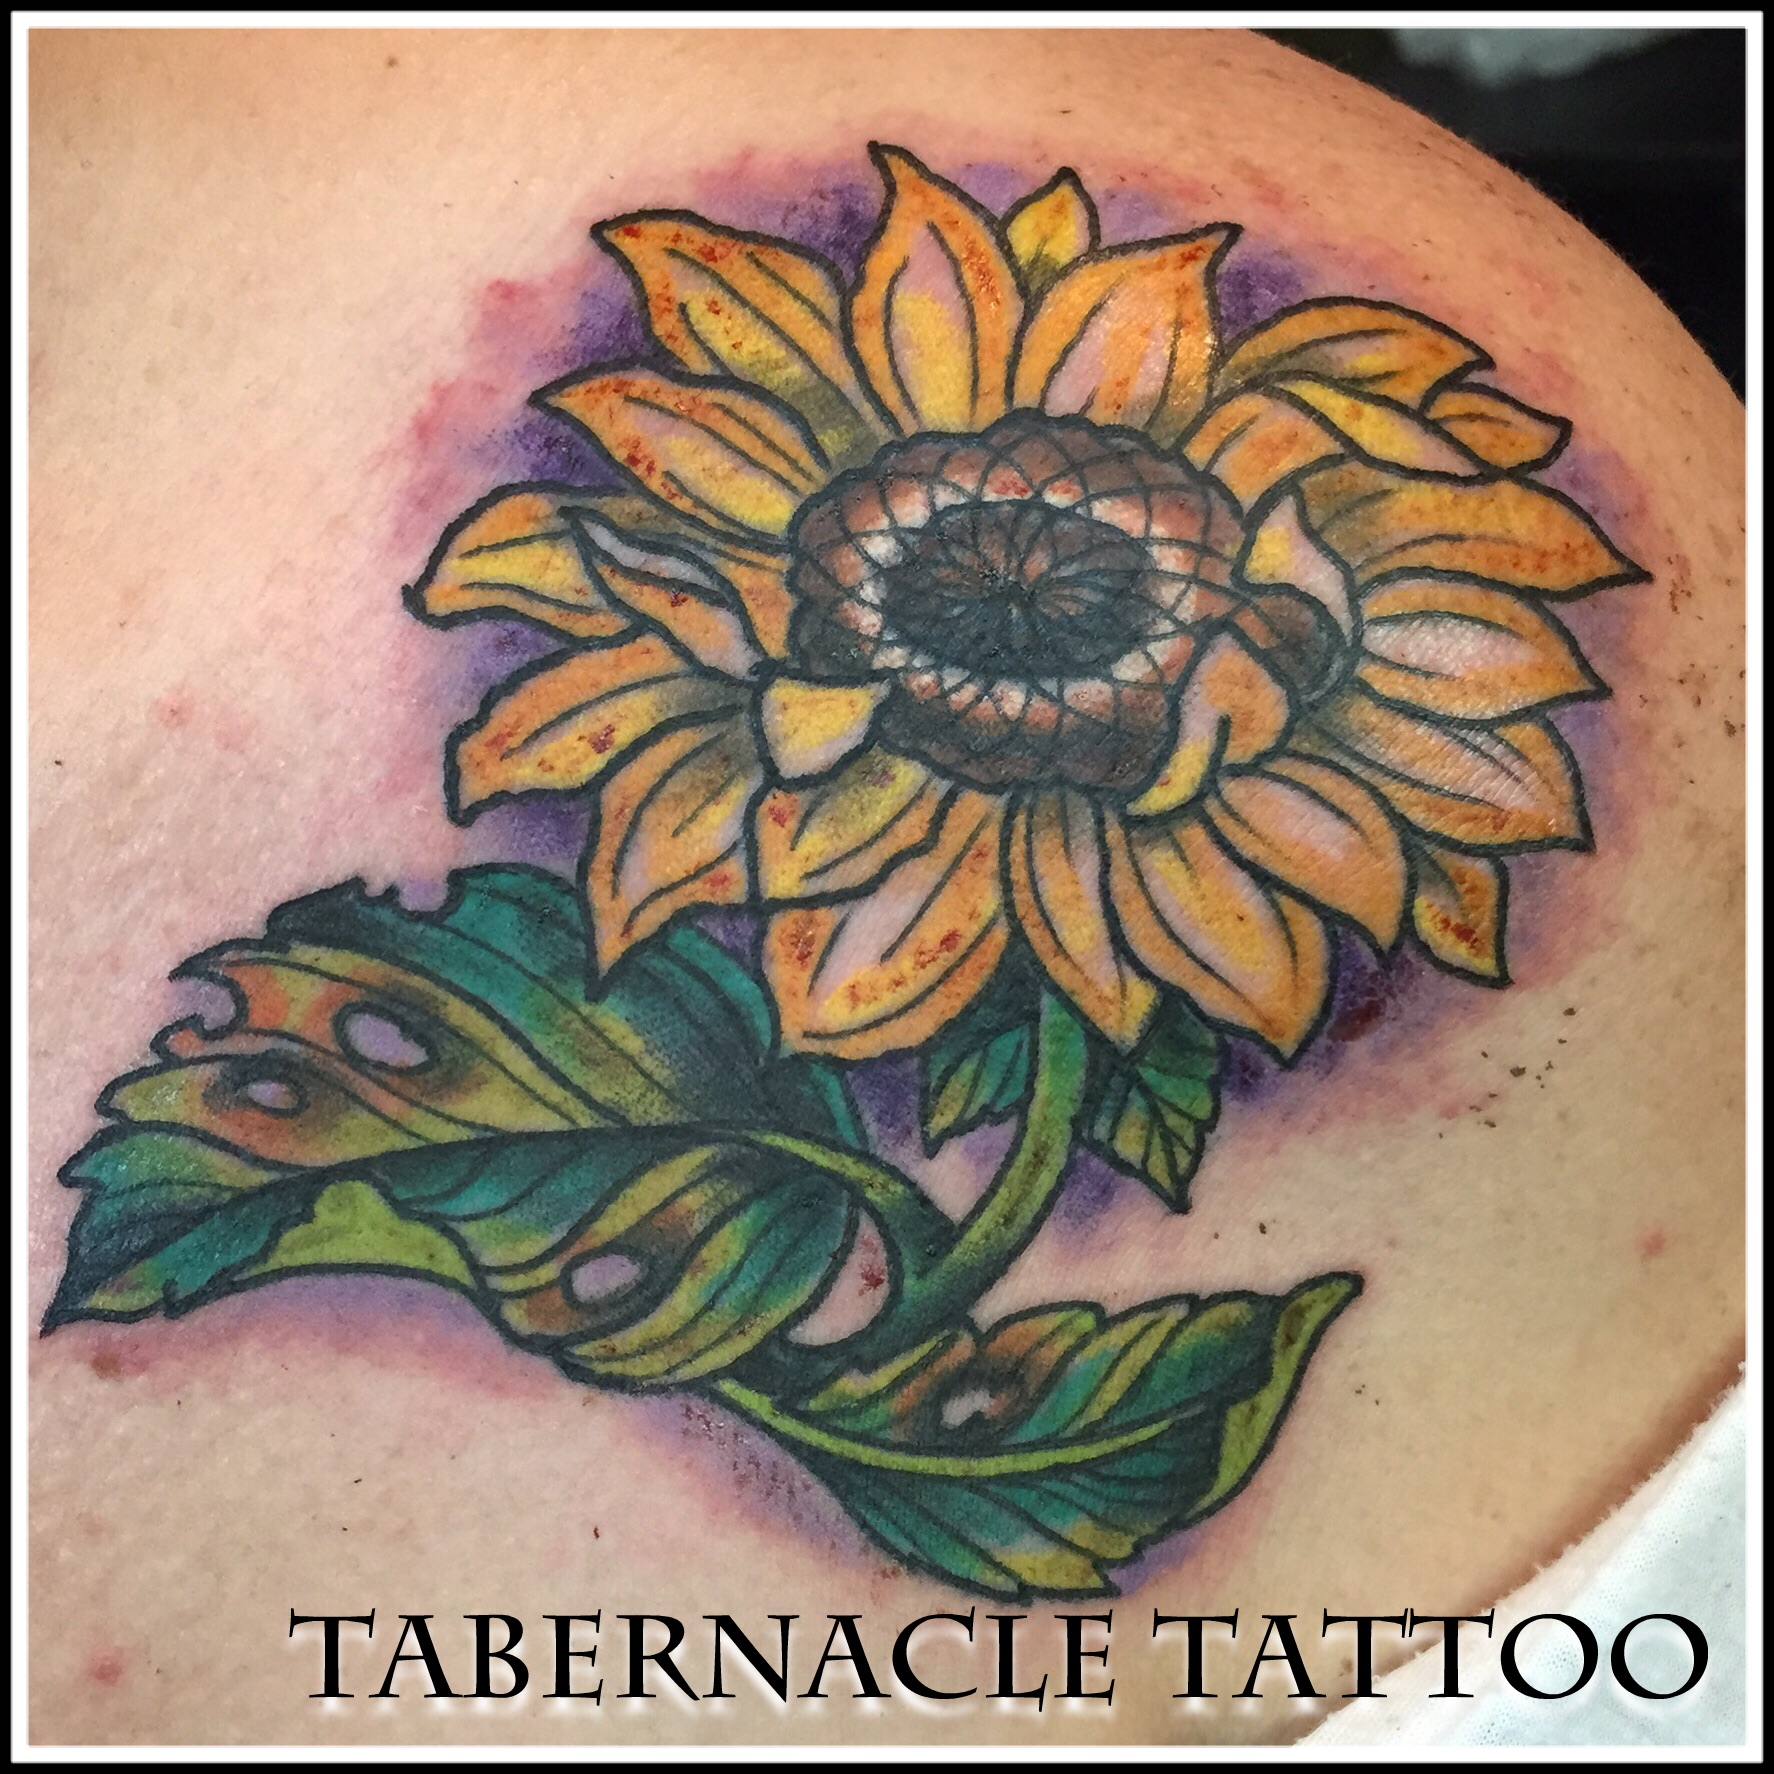 Tattoos for woman tampa